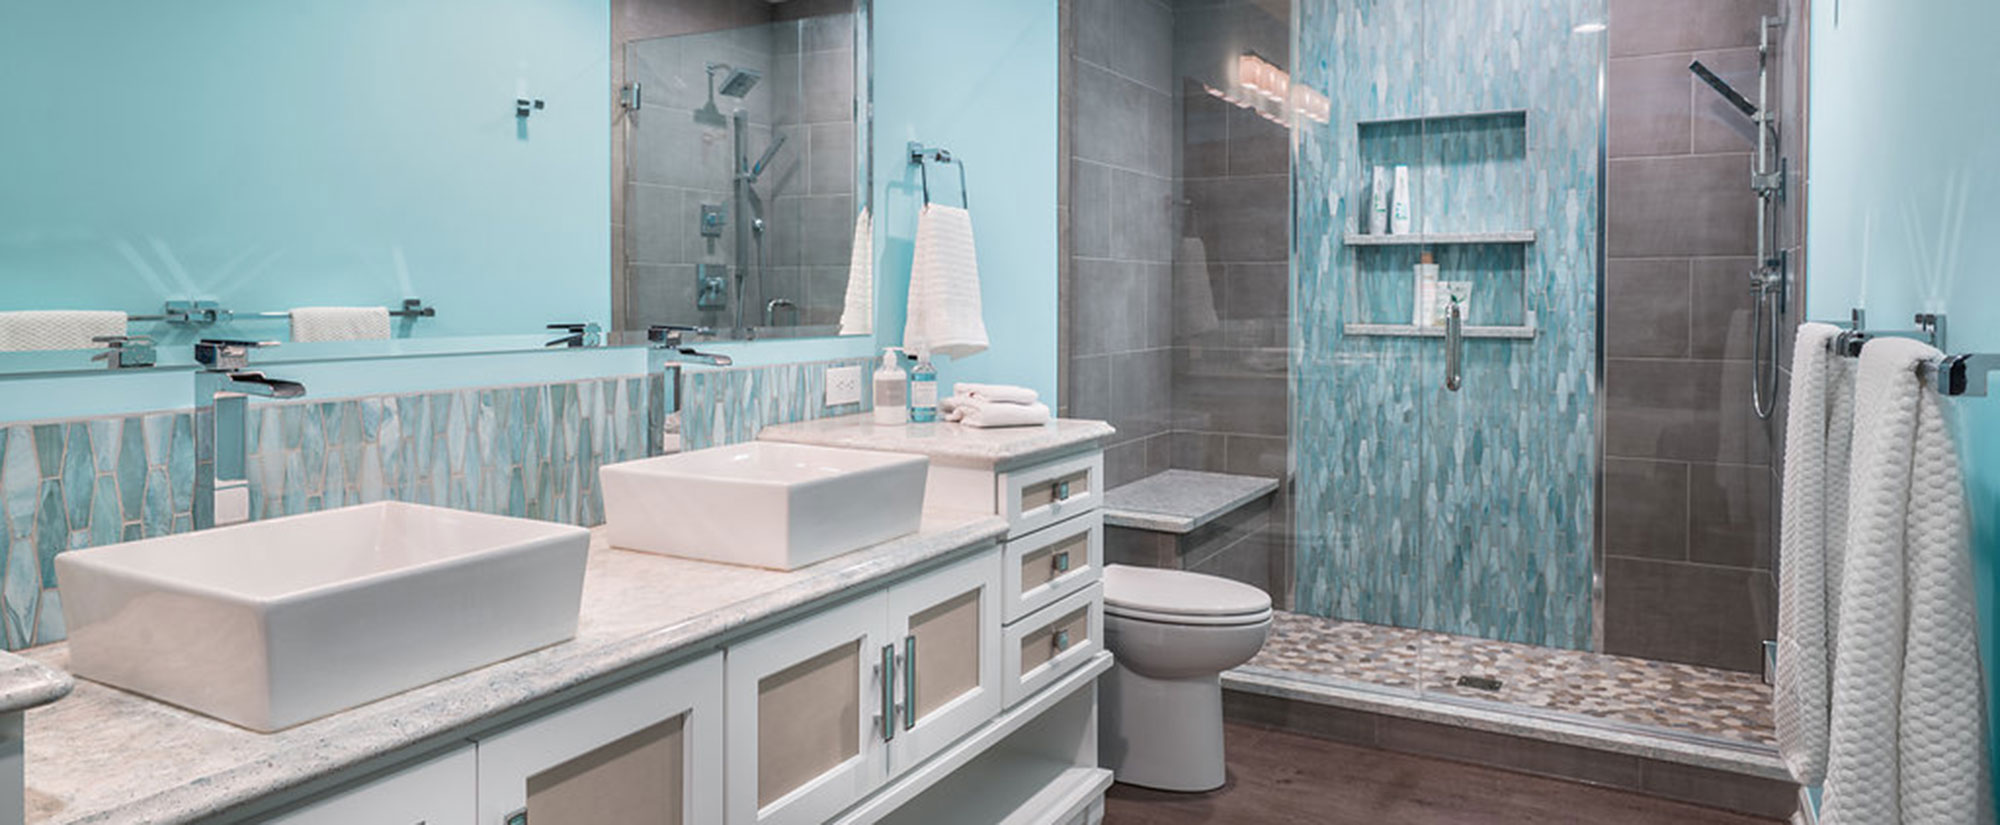 Surprising 3 Master Bathrooms Remodels 3 Budgets Scopes The Cleary Home Interior And Landscaping Oversignezvosmurscom